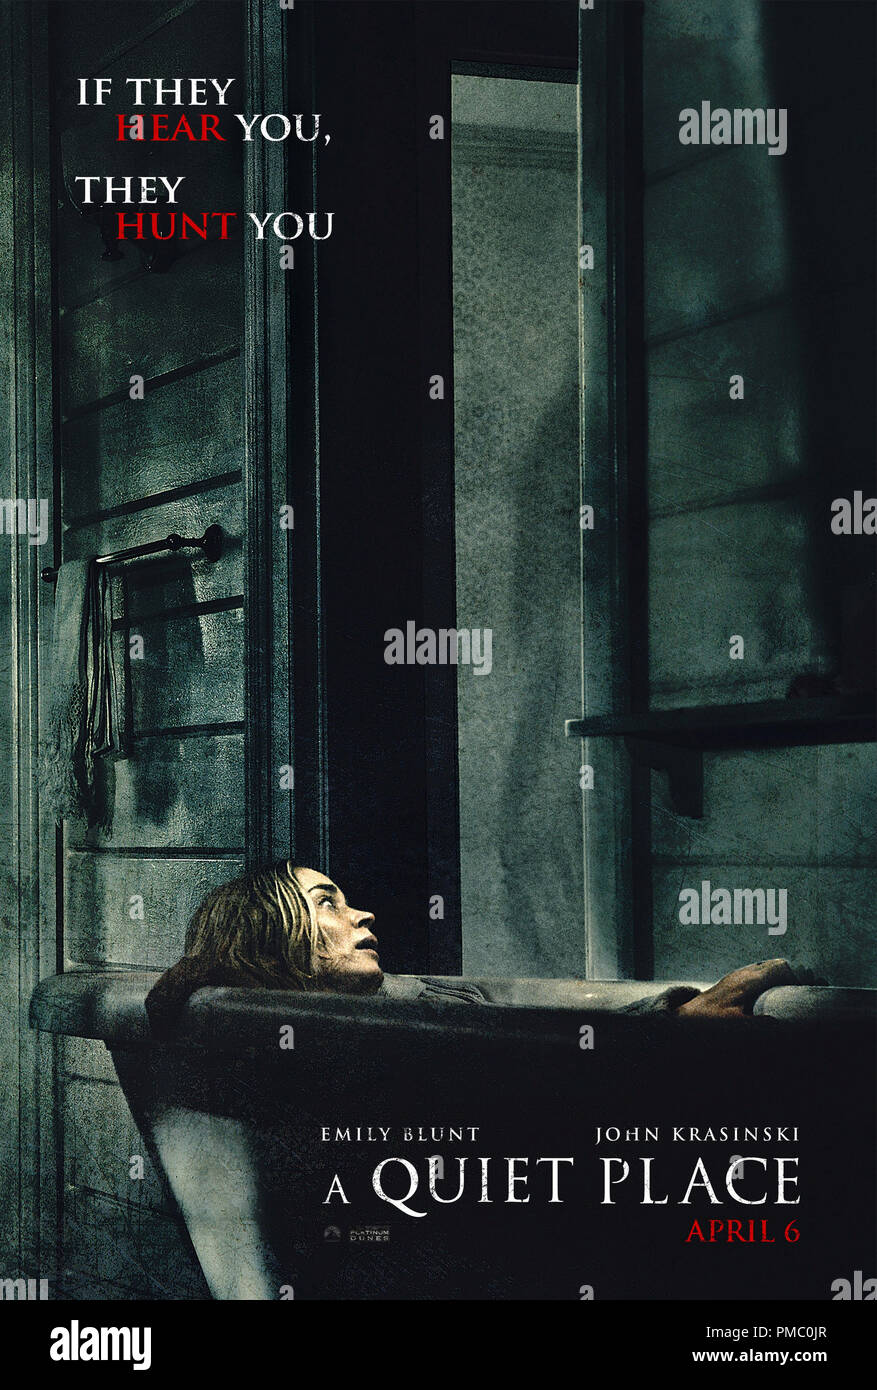 A Quiet Place 2018 Paramount Pictures Poster Stock Photo Alamy